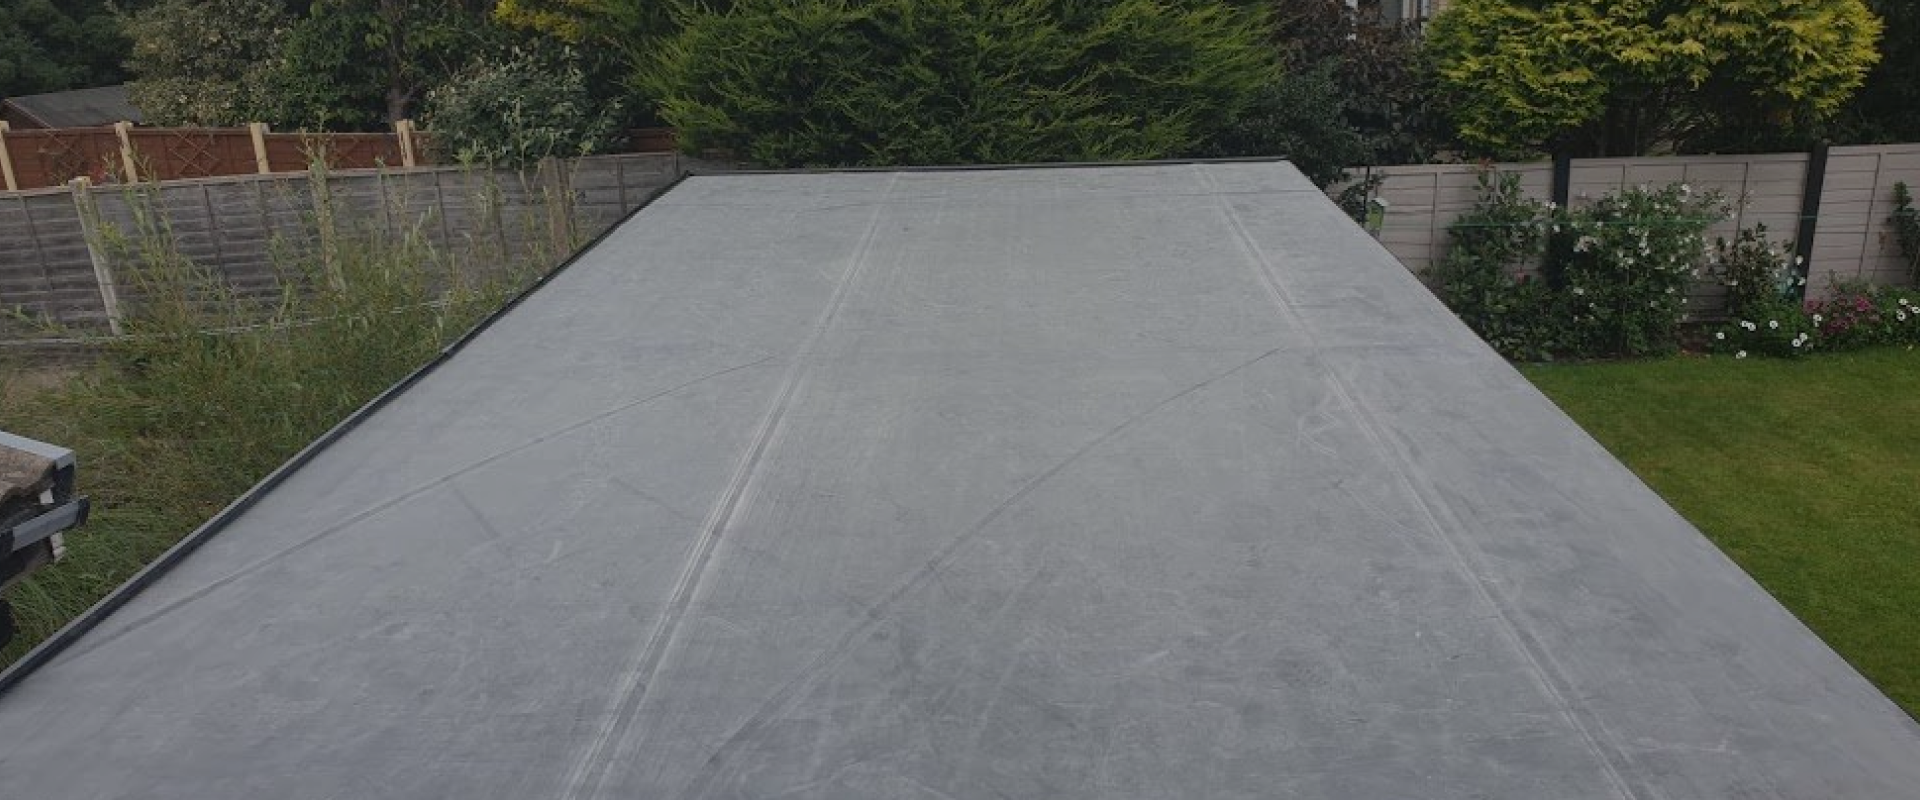 Sturdy EPDM Rubber Roofs That Are Built To Last